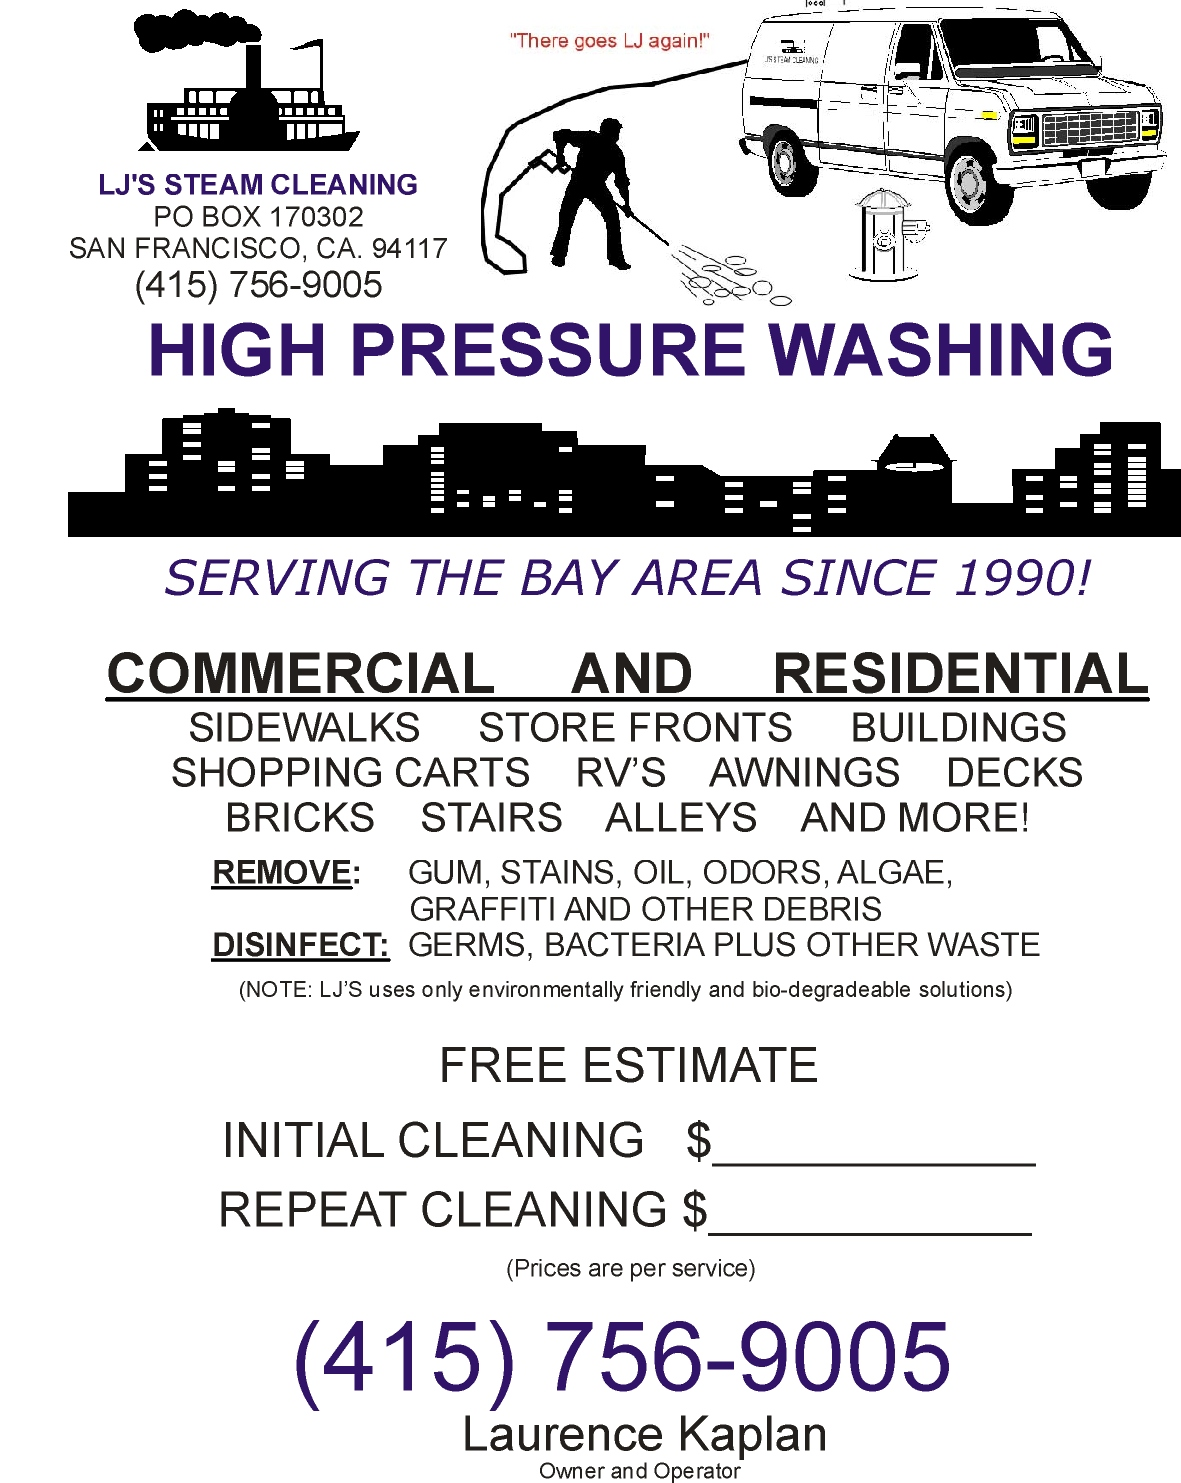 LJS STEAM CLEANING SERVICES